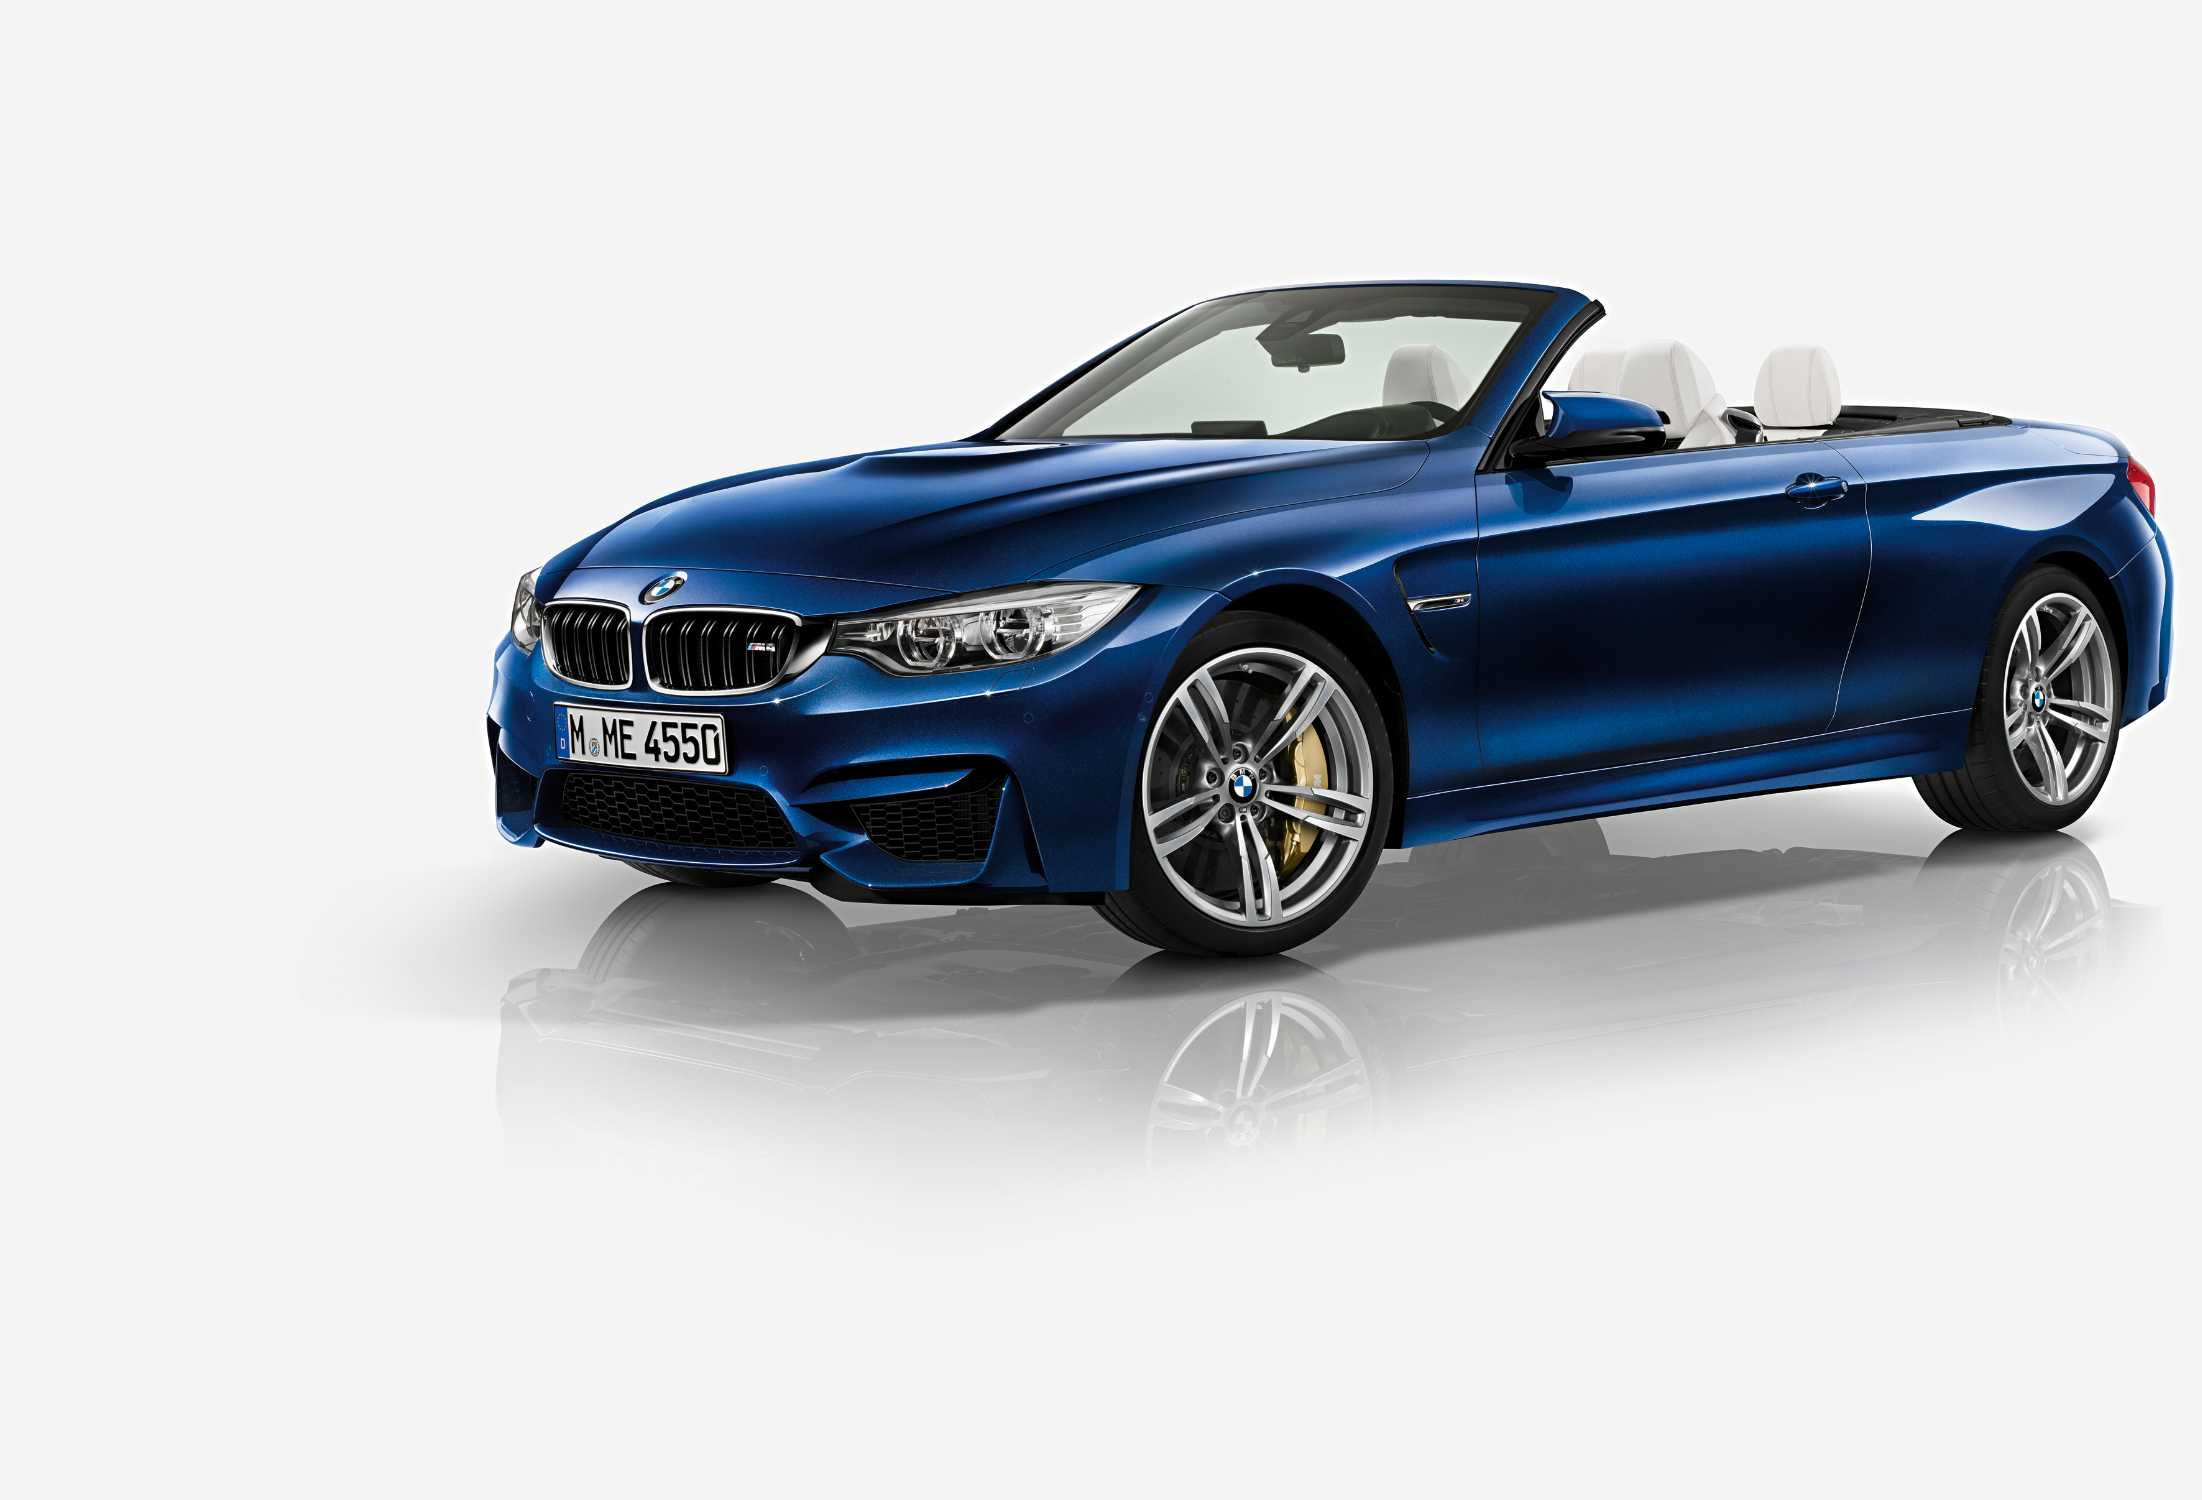 The New Bmw M4 Convertible In Bmw Individual Tanzanite